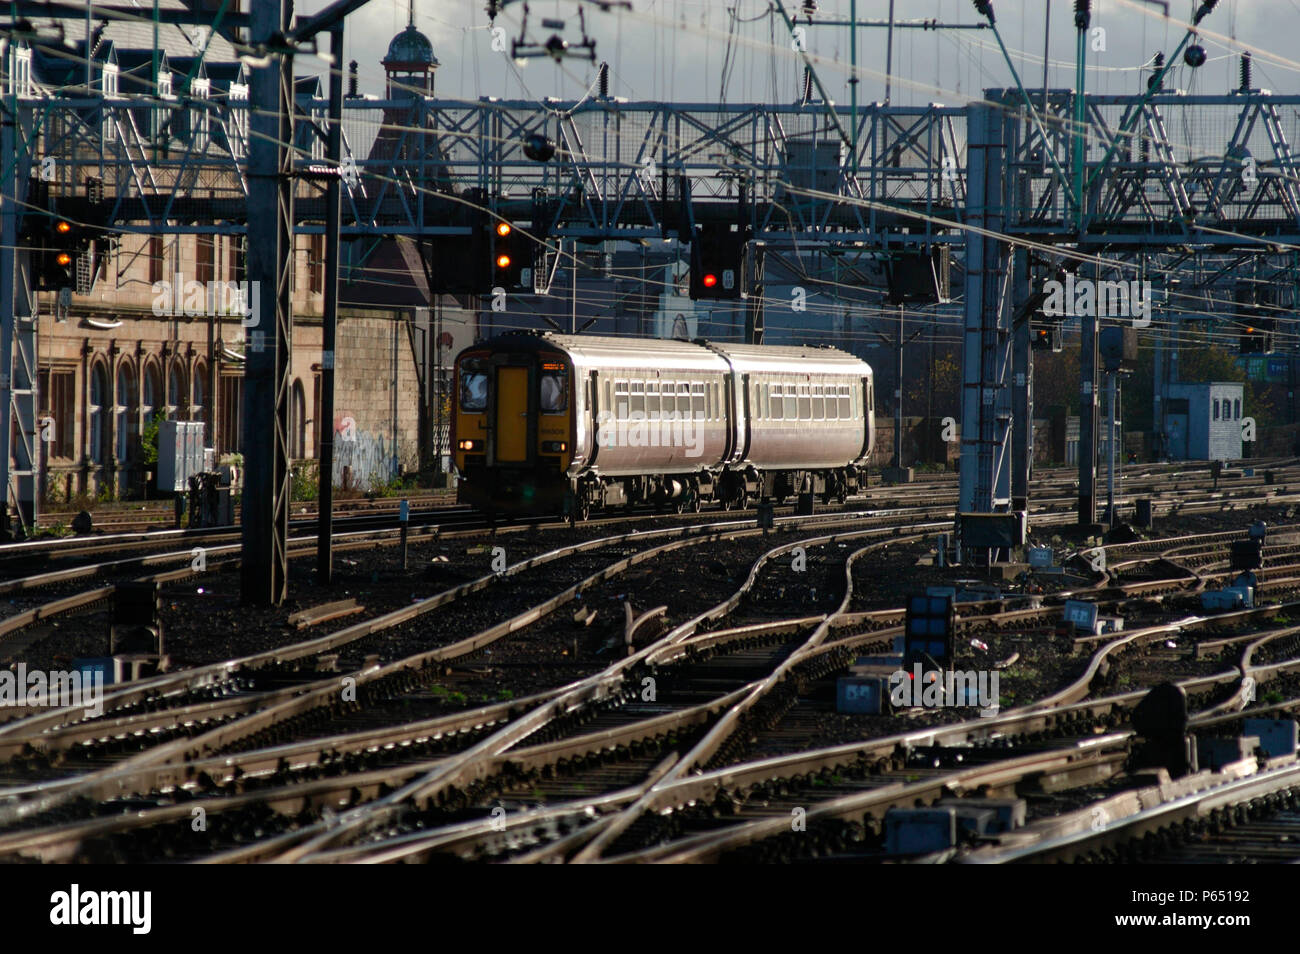 A local service from Edinburgh via Shotts approaches Glasgow Central. November 2004. - Stock Image